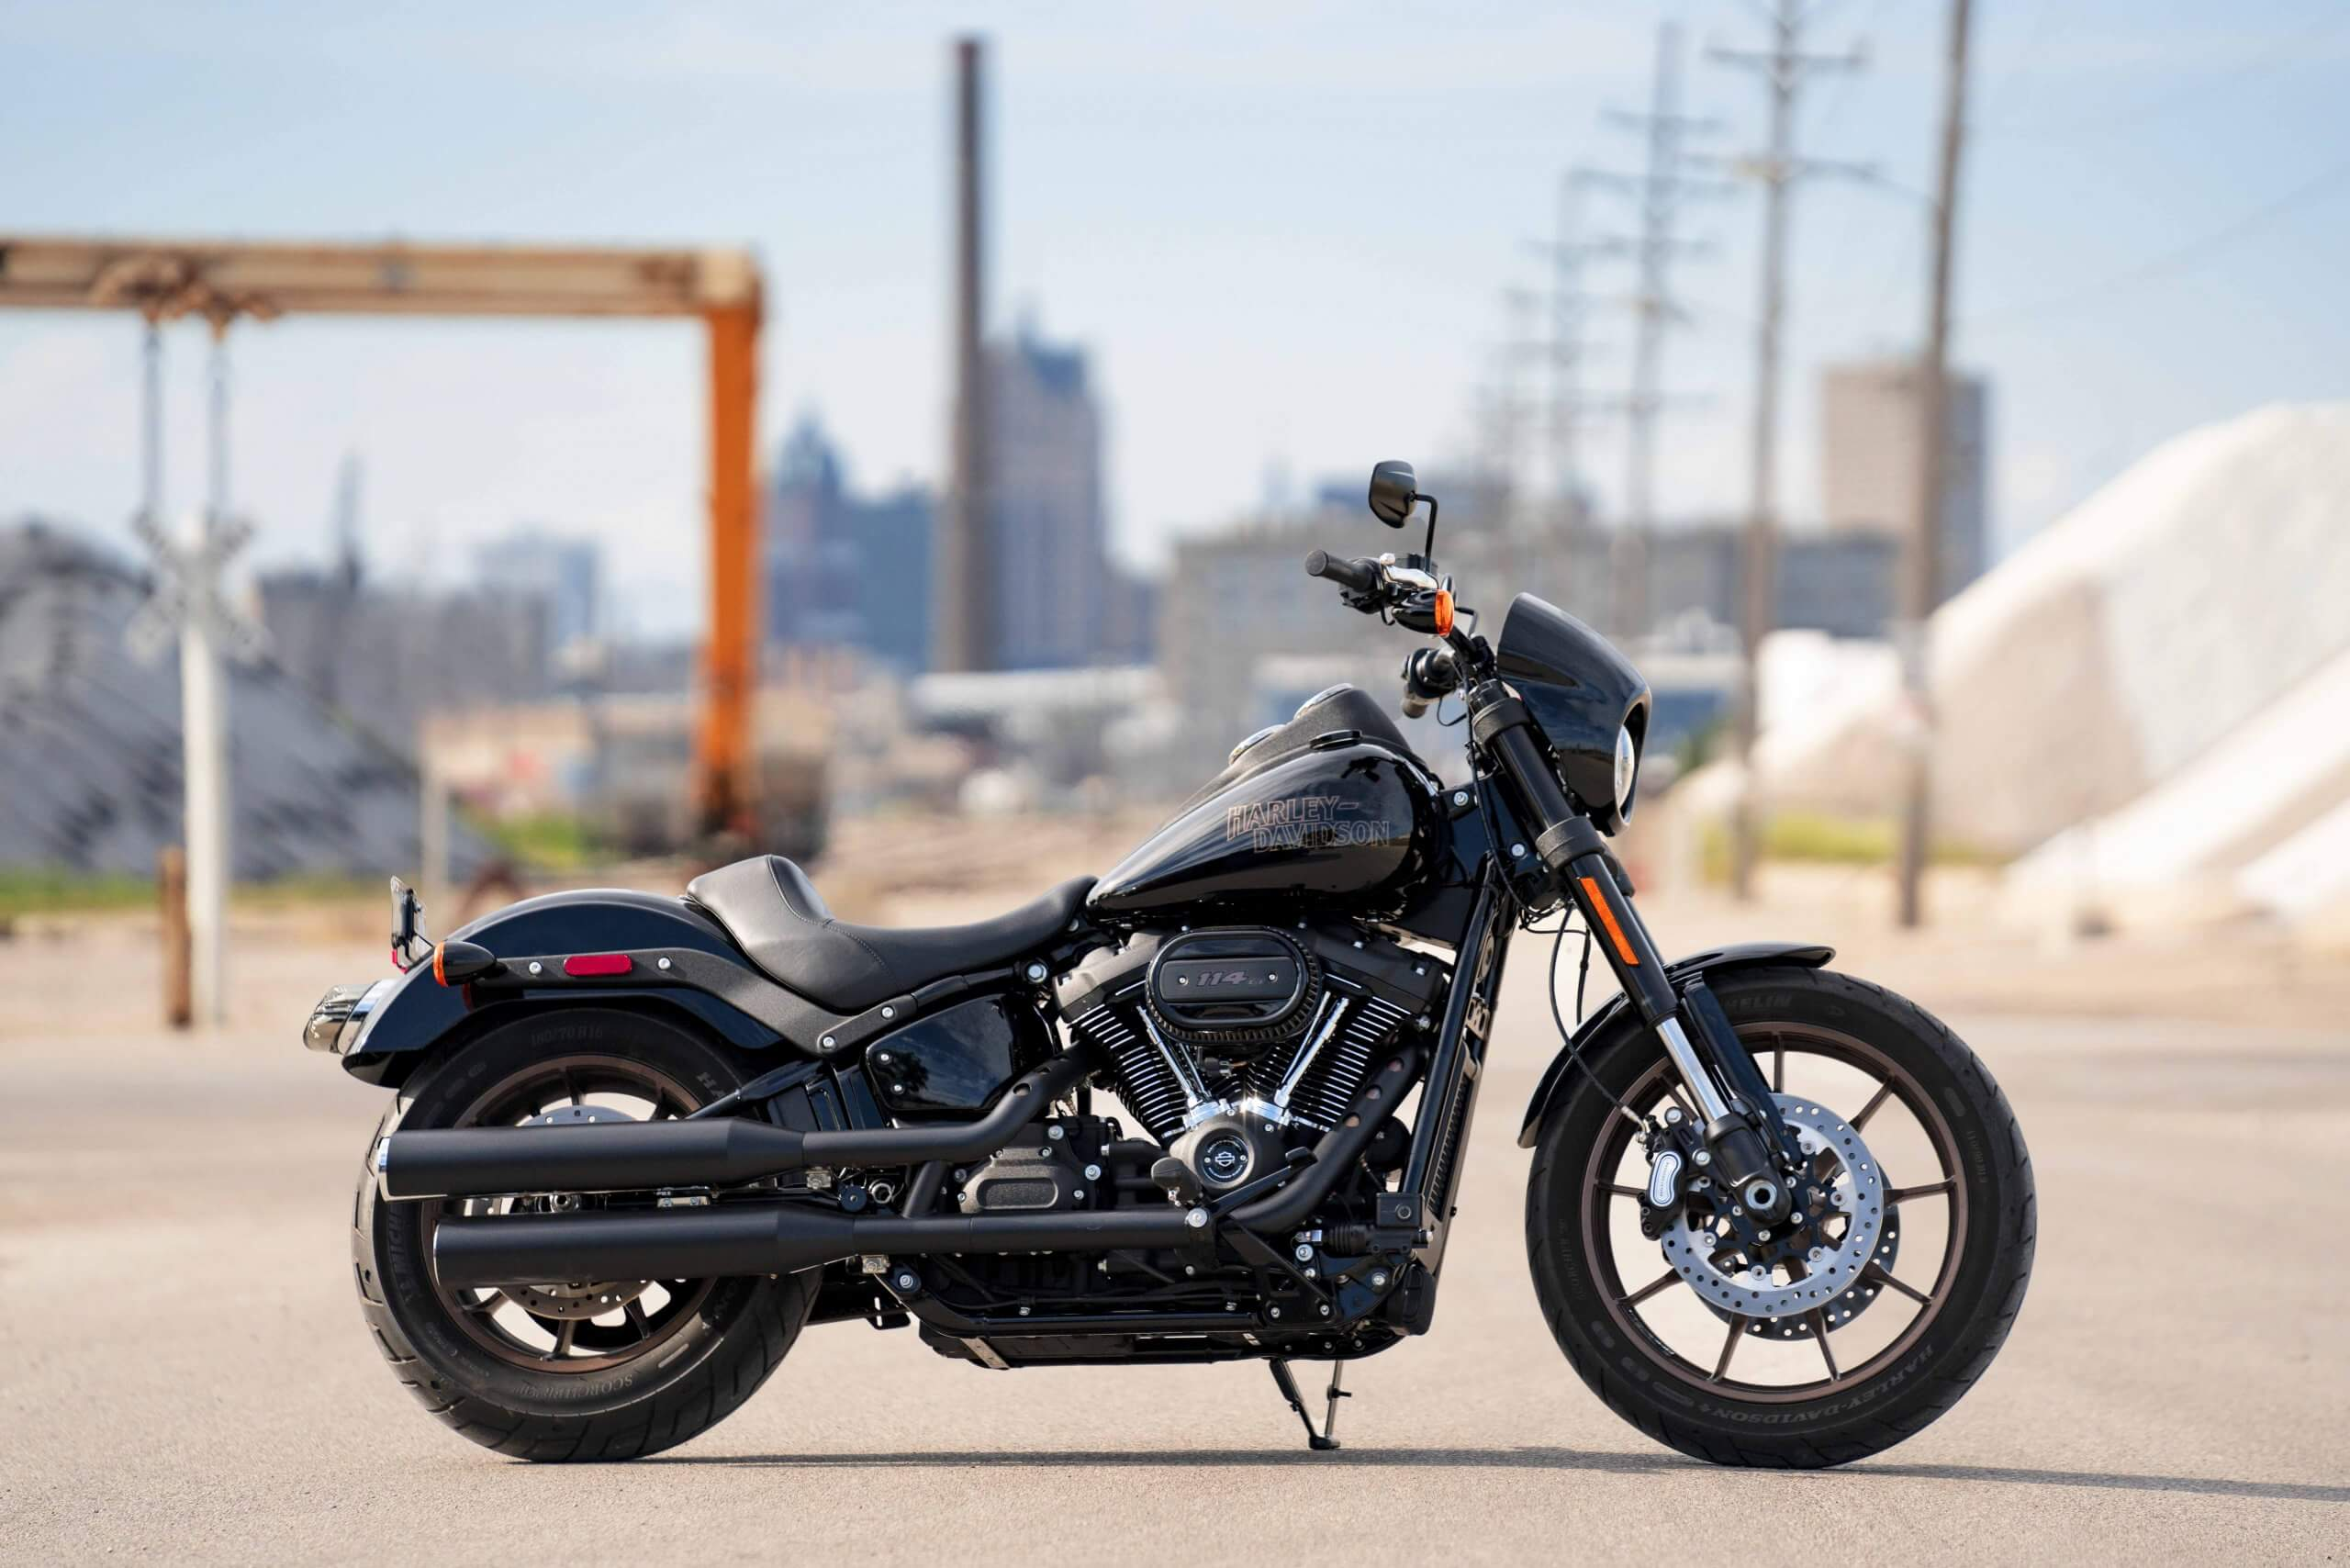 Milwaukee-Eight® 114 V-Twin engine and moto-style drag bars